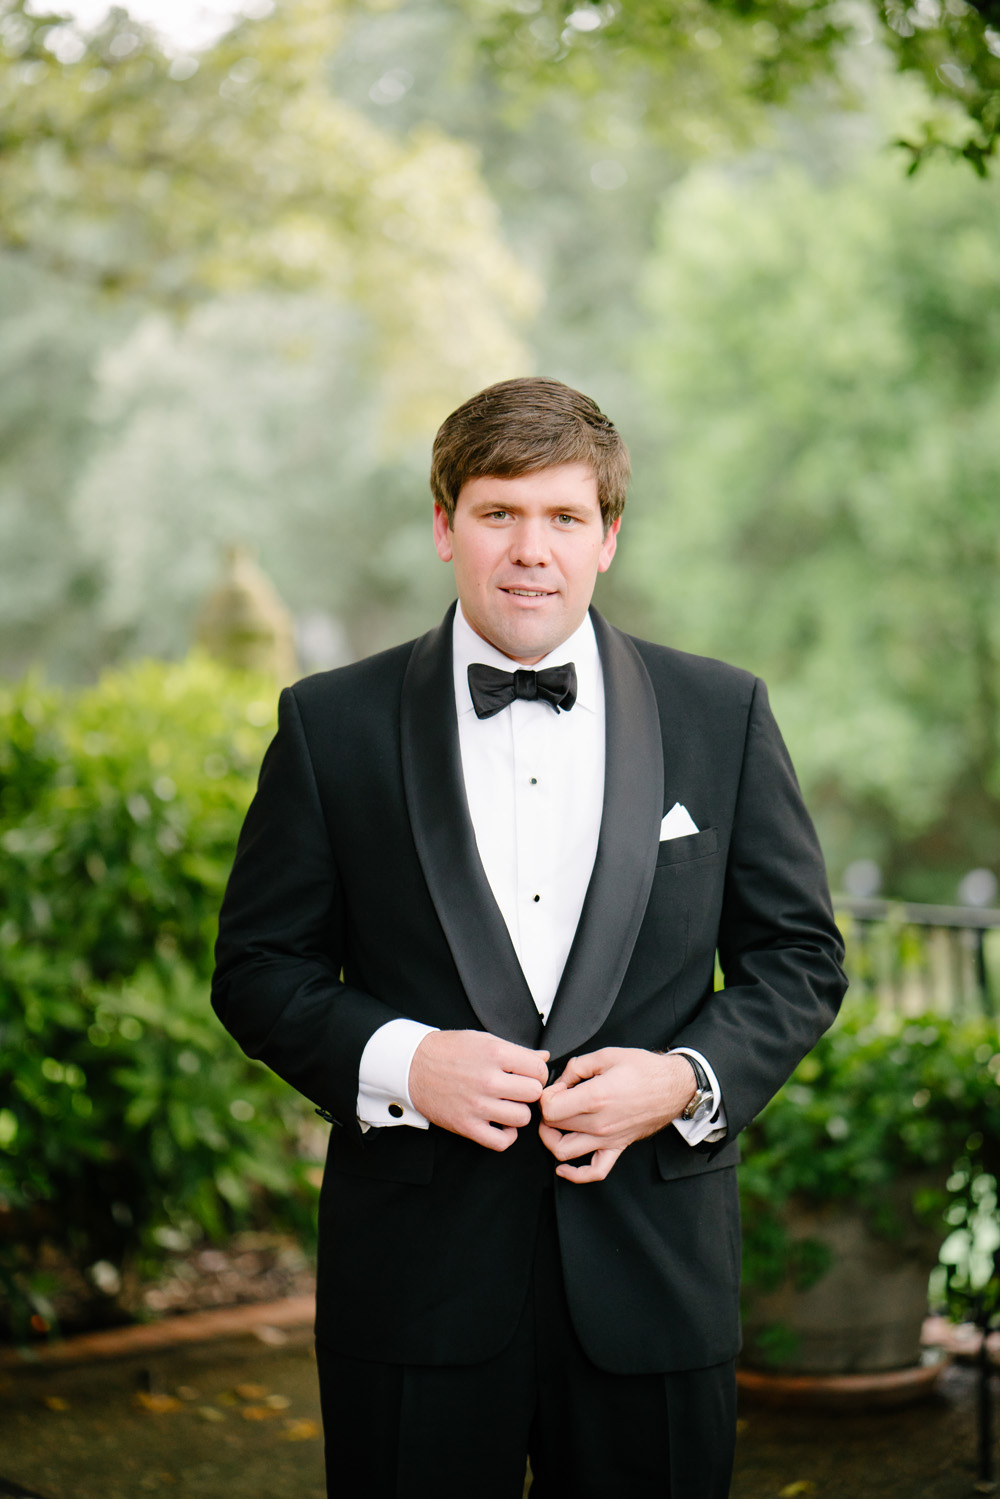 southern wedding classic tuxedo for groom